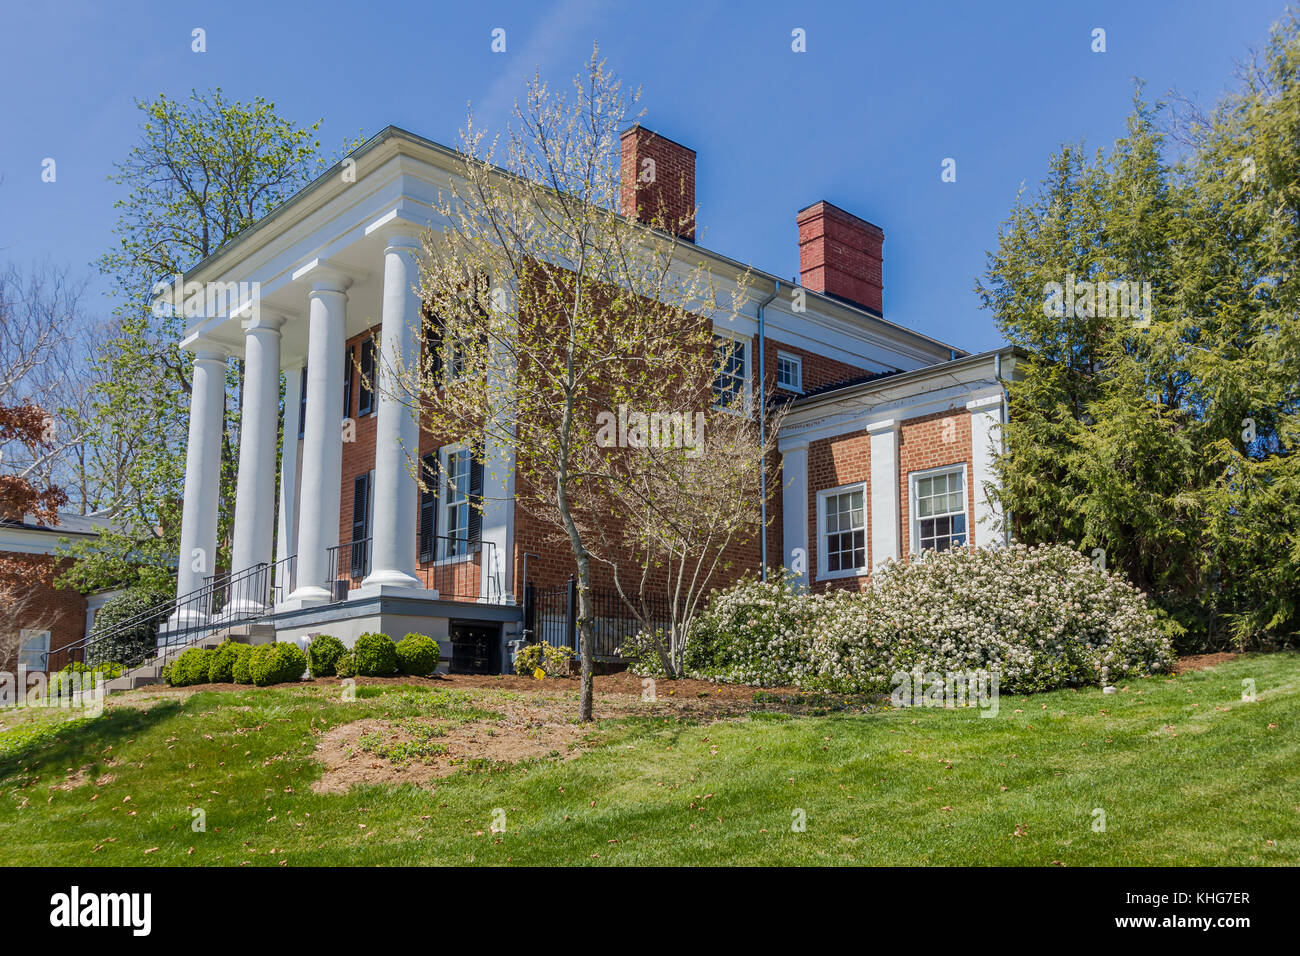 Gilliam Admissions House at Washington and Lee University in Lexington, Virginia. - Stock Image